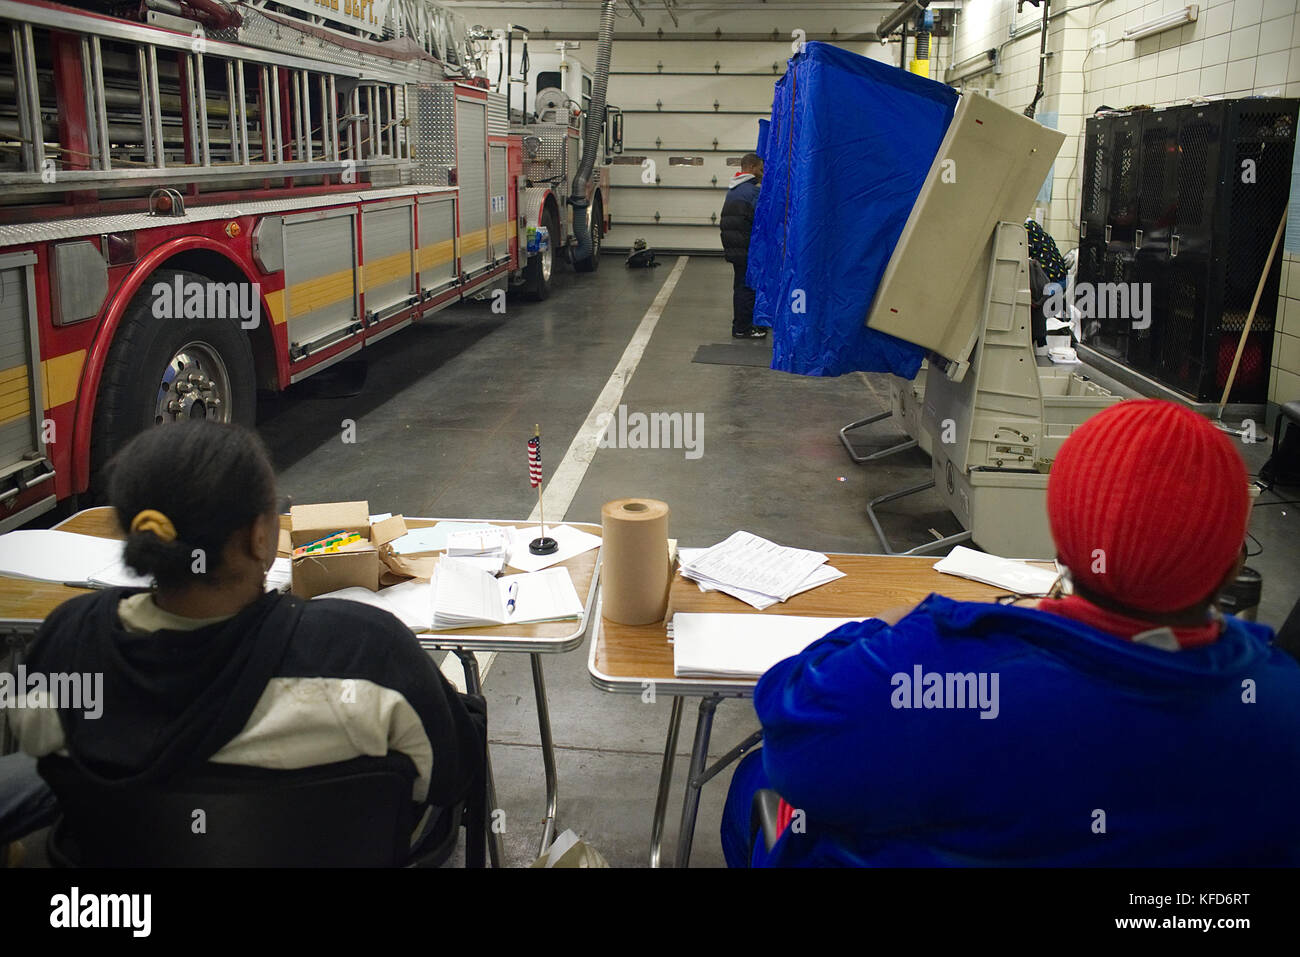 Electronic voting machines stand next to a fire truck of the Philadelphia Fire Dept., on Election Day at a Philadelphia, - Stock Image